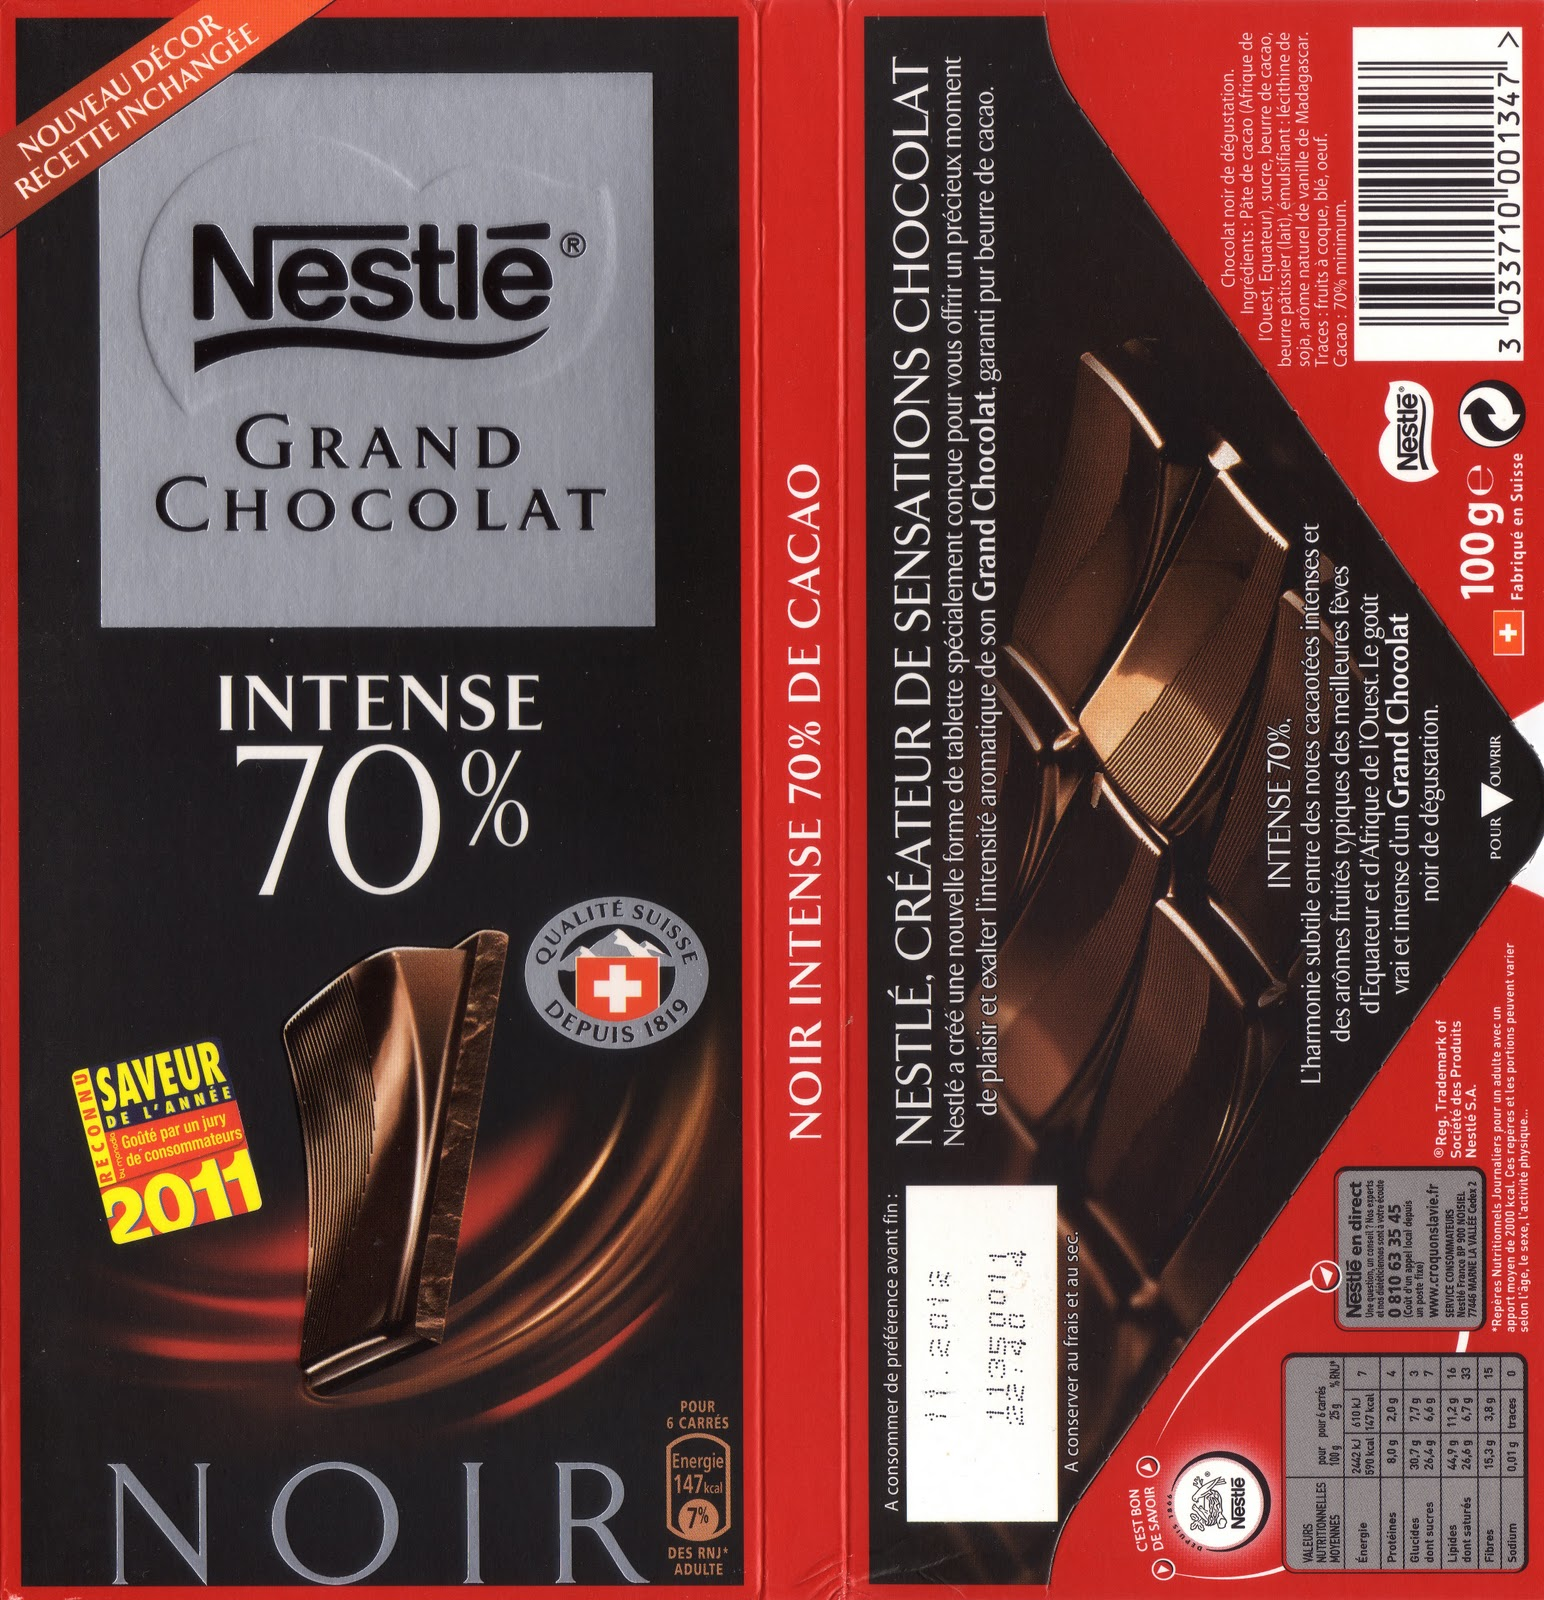 Connu Nestlé Grand Chocolat Intense 70 ~ Tablette de Choc XS08